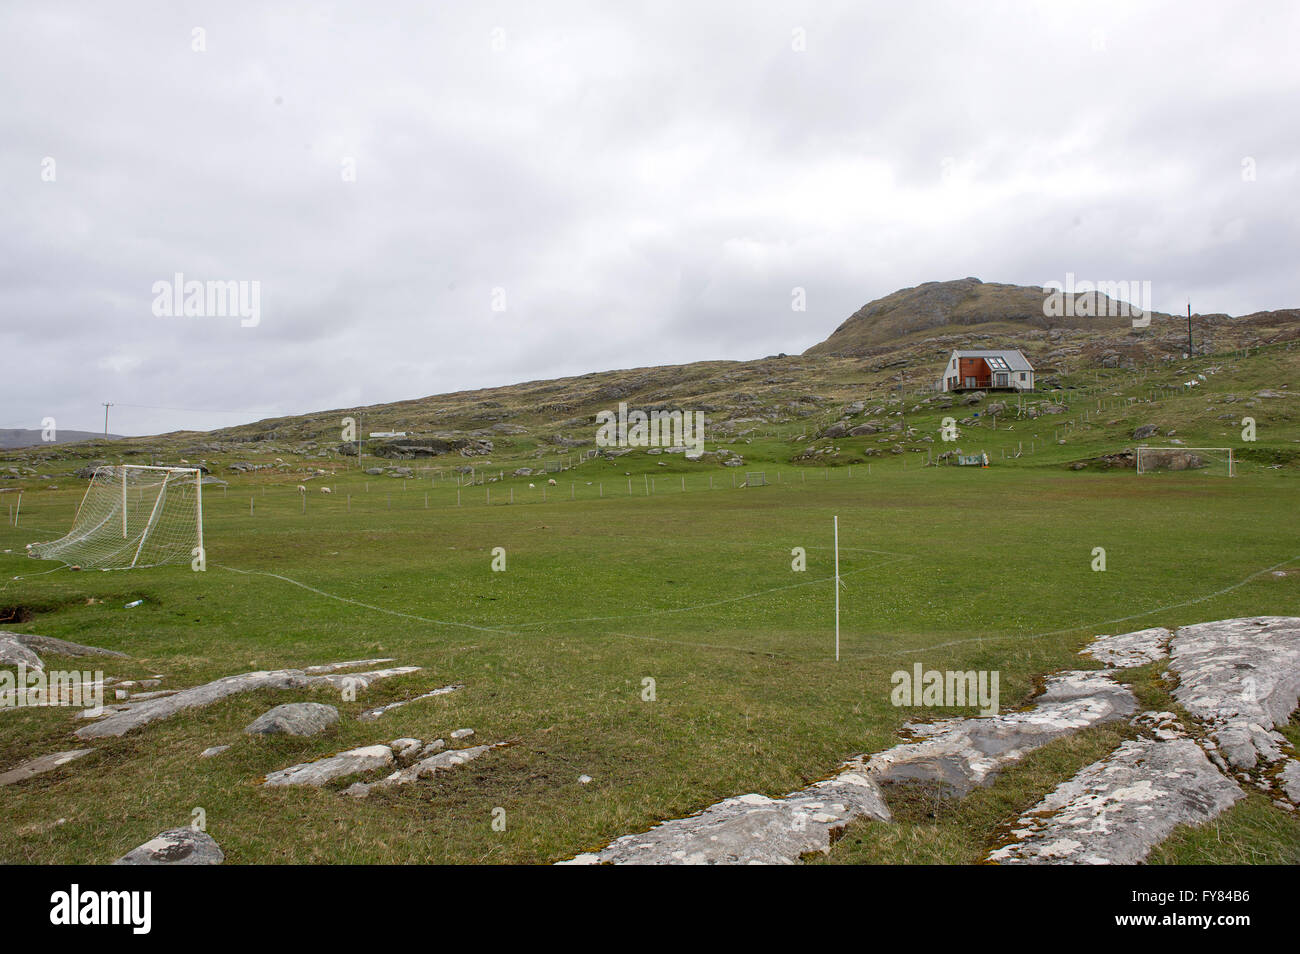 A remote football field on the island of Eriskay in the Outer Hebrides, Western isles of Scotland. - Stock Image